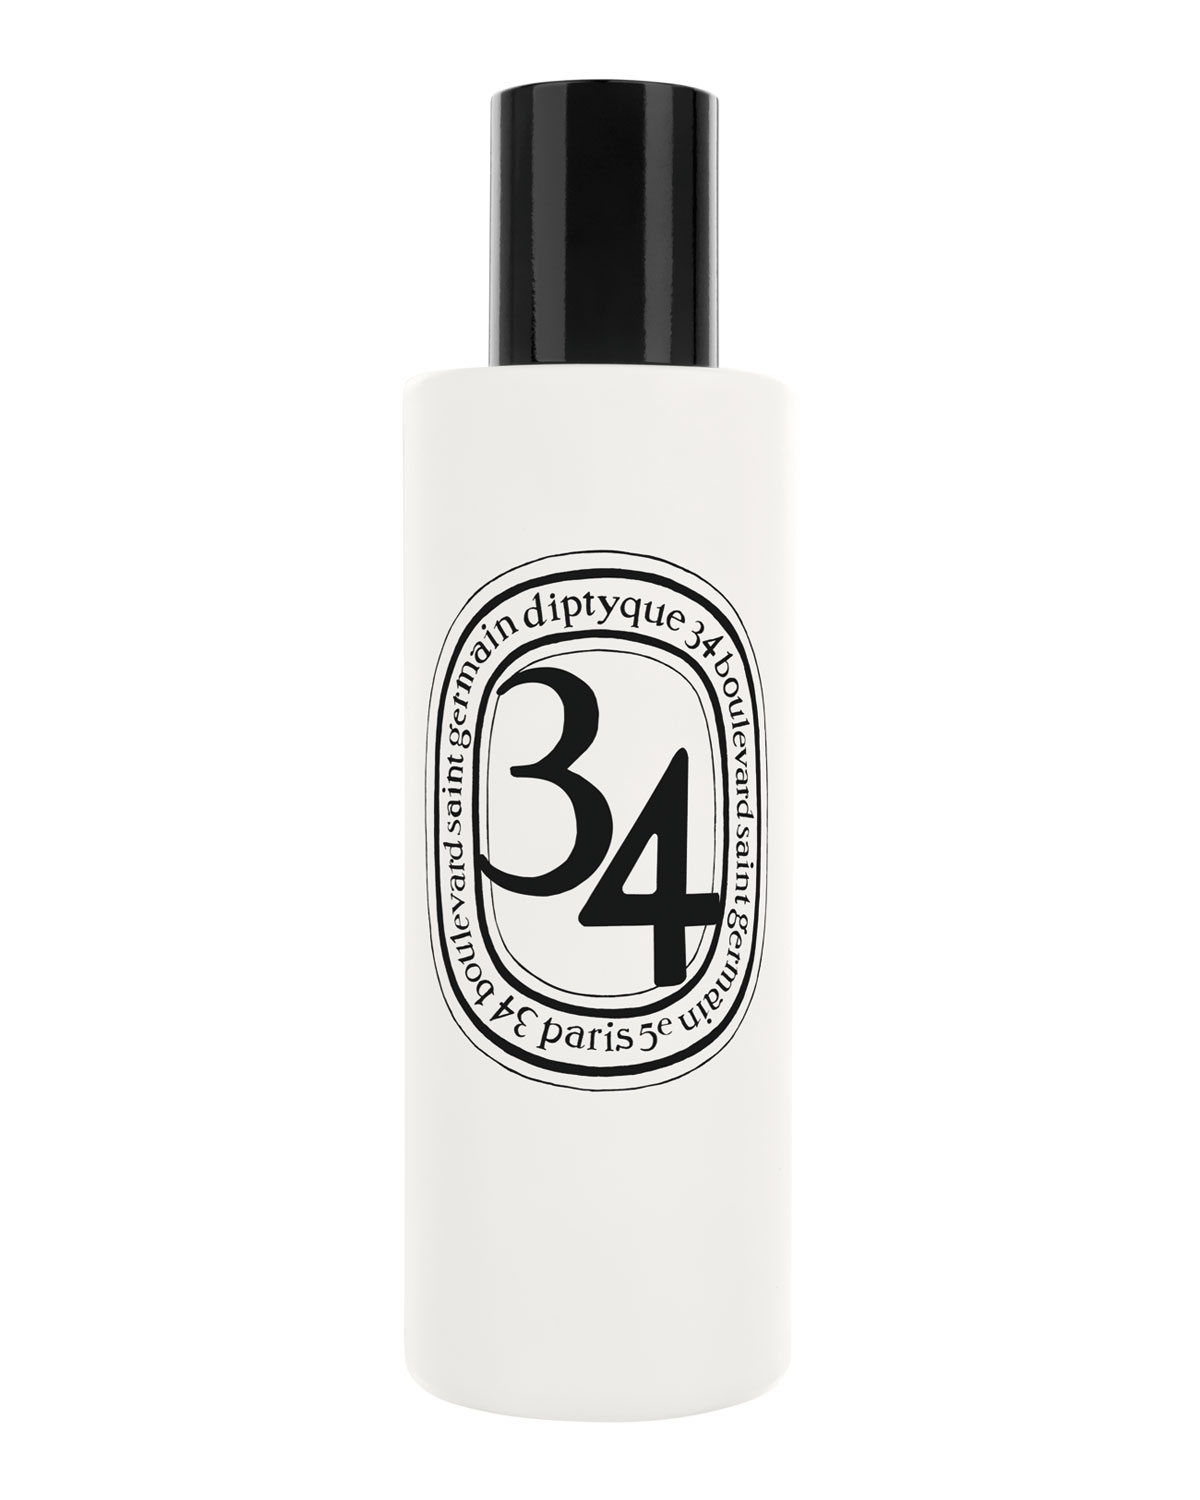 Diptyque 3.4 oz. 34 Boulevard Saint Germain Room Spray